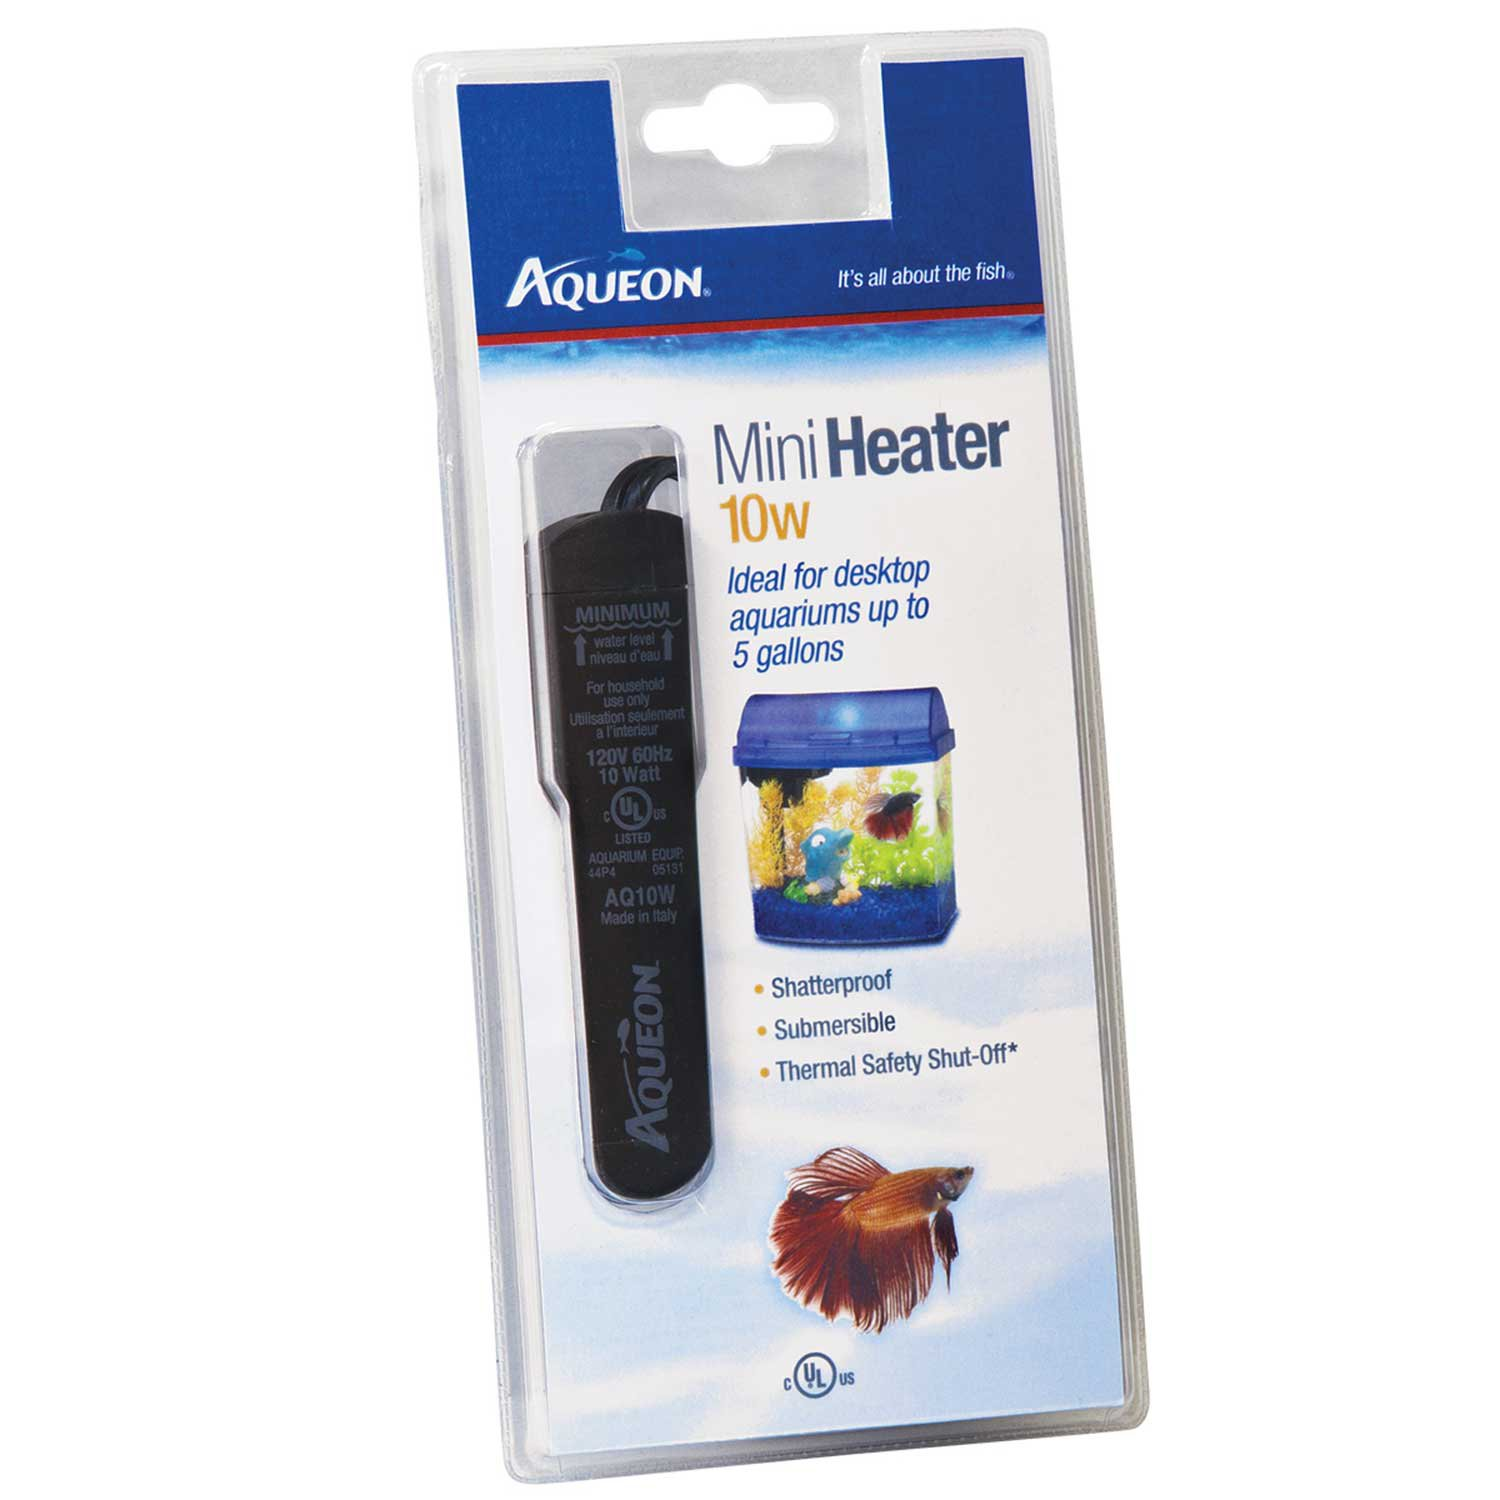 Aqueon pro submersible 50w heater | petco.